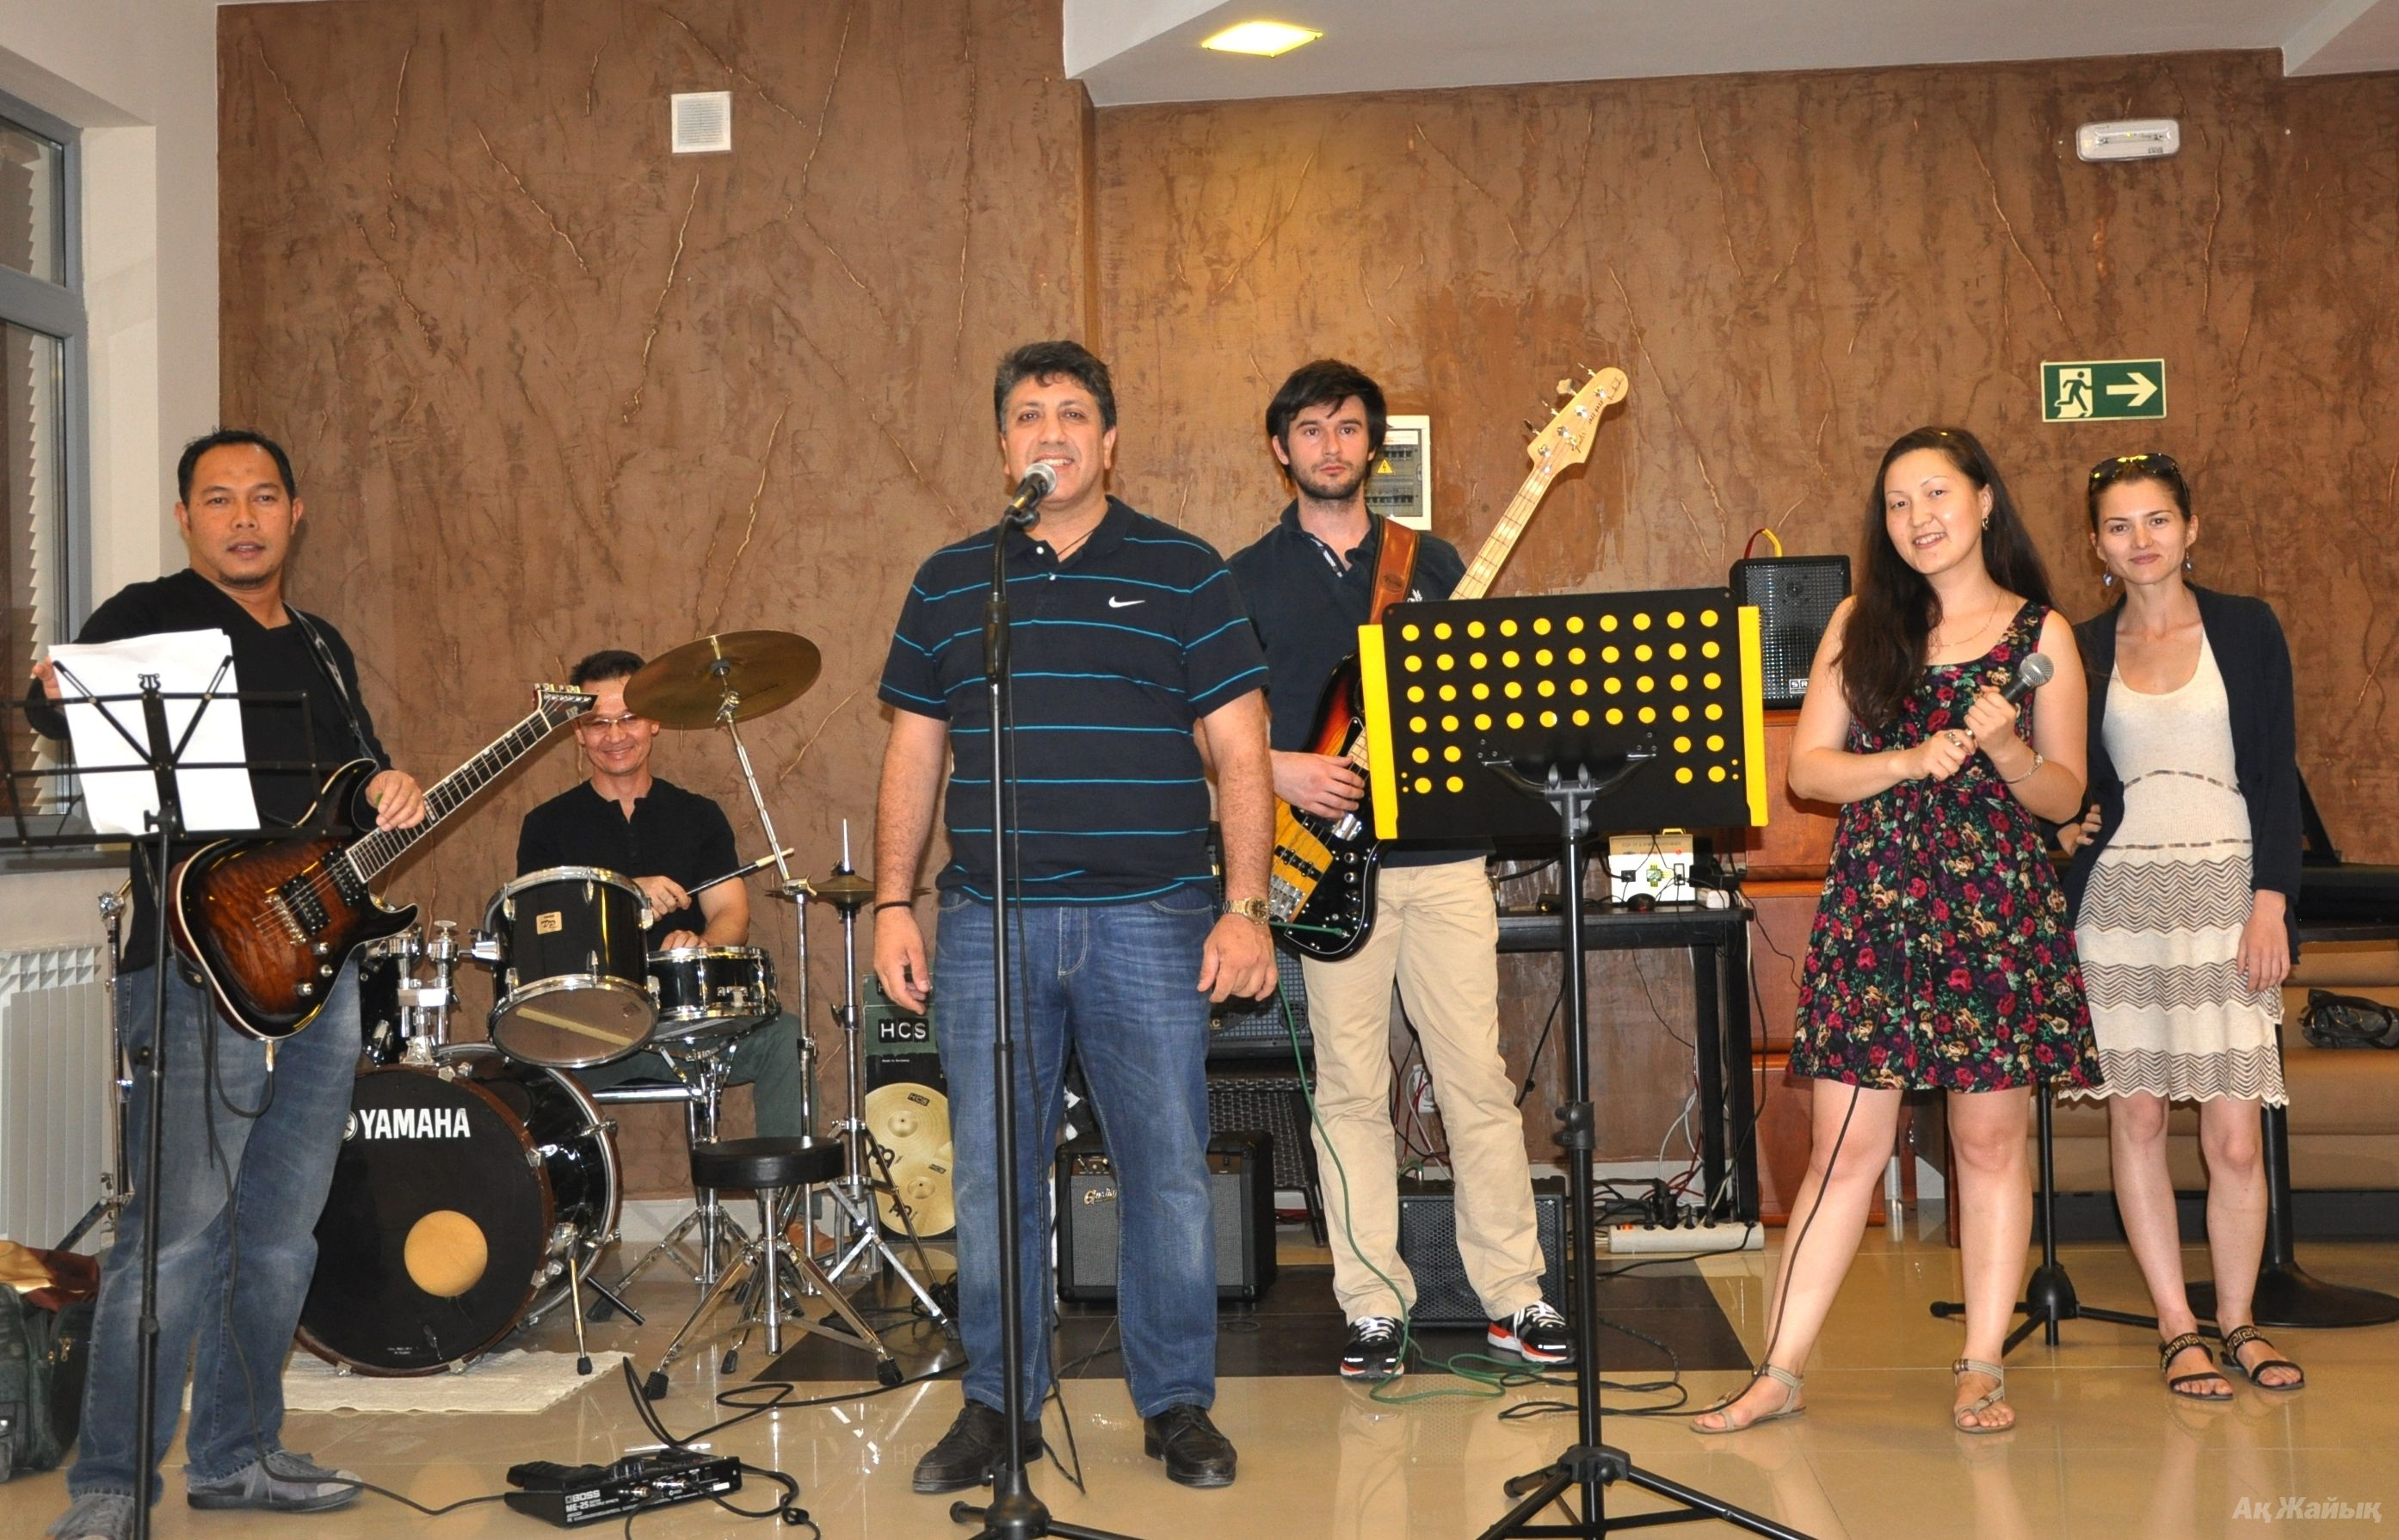 The band had its 1st public performance on July 13, 2013